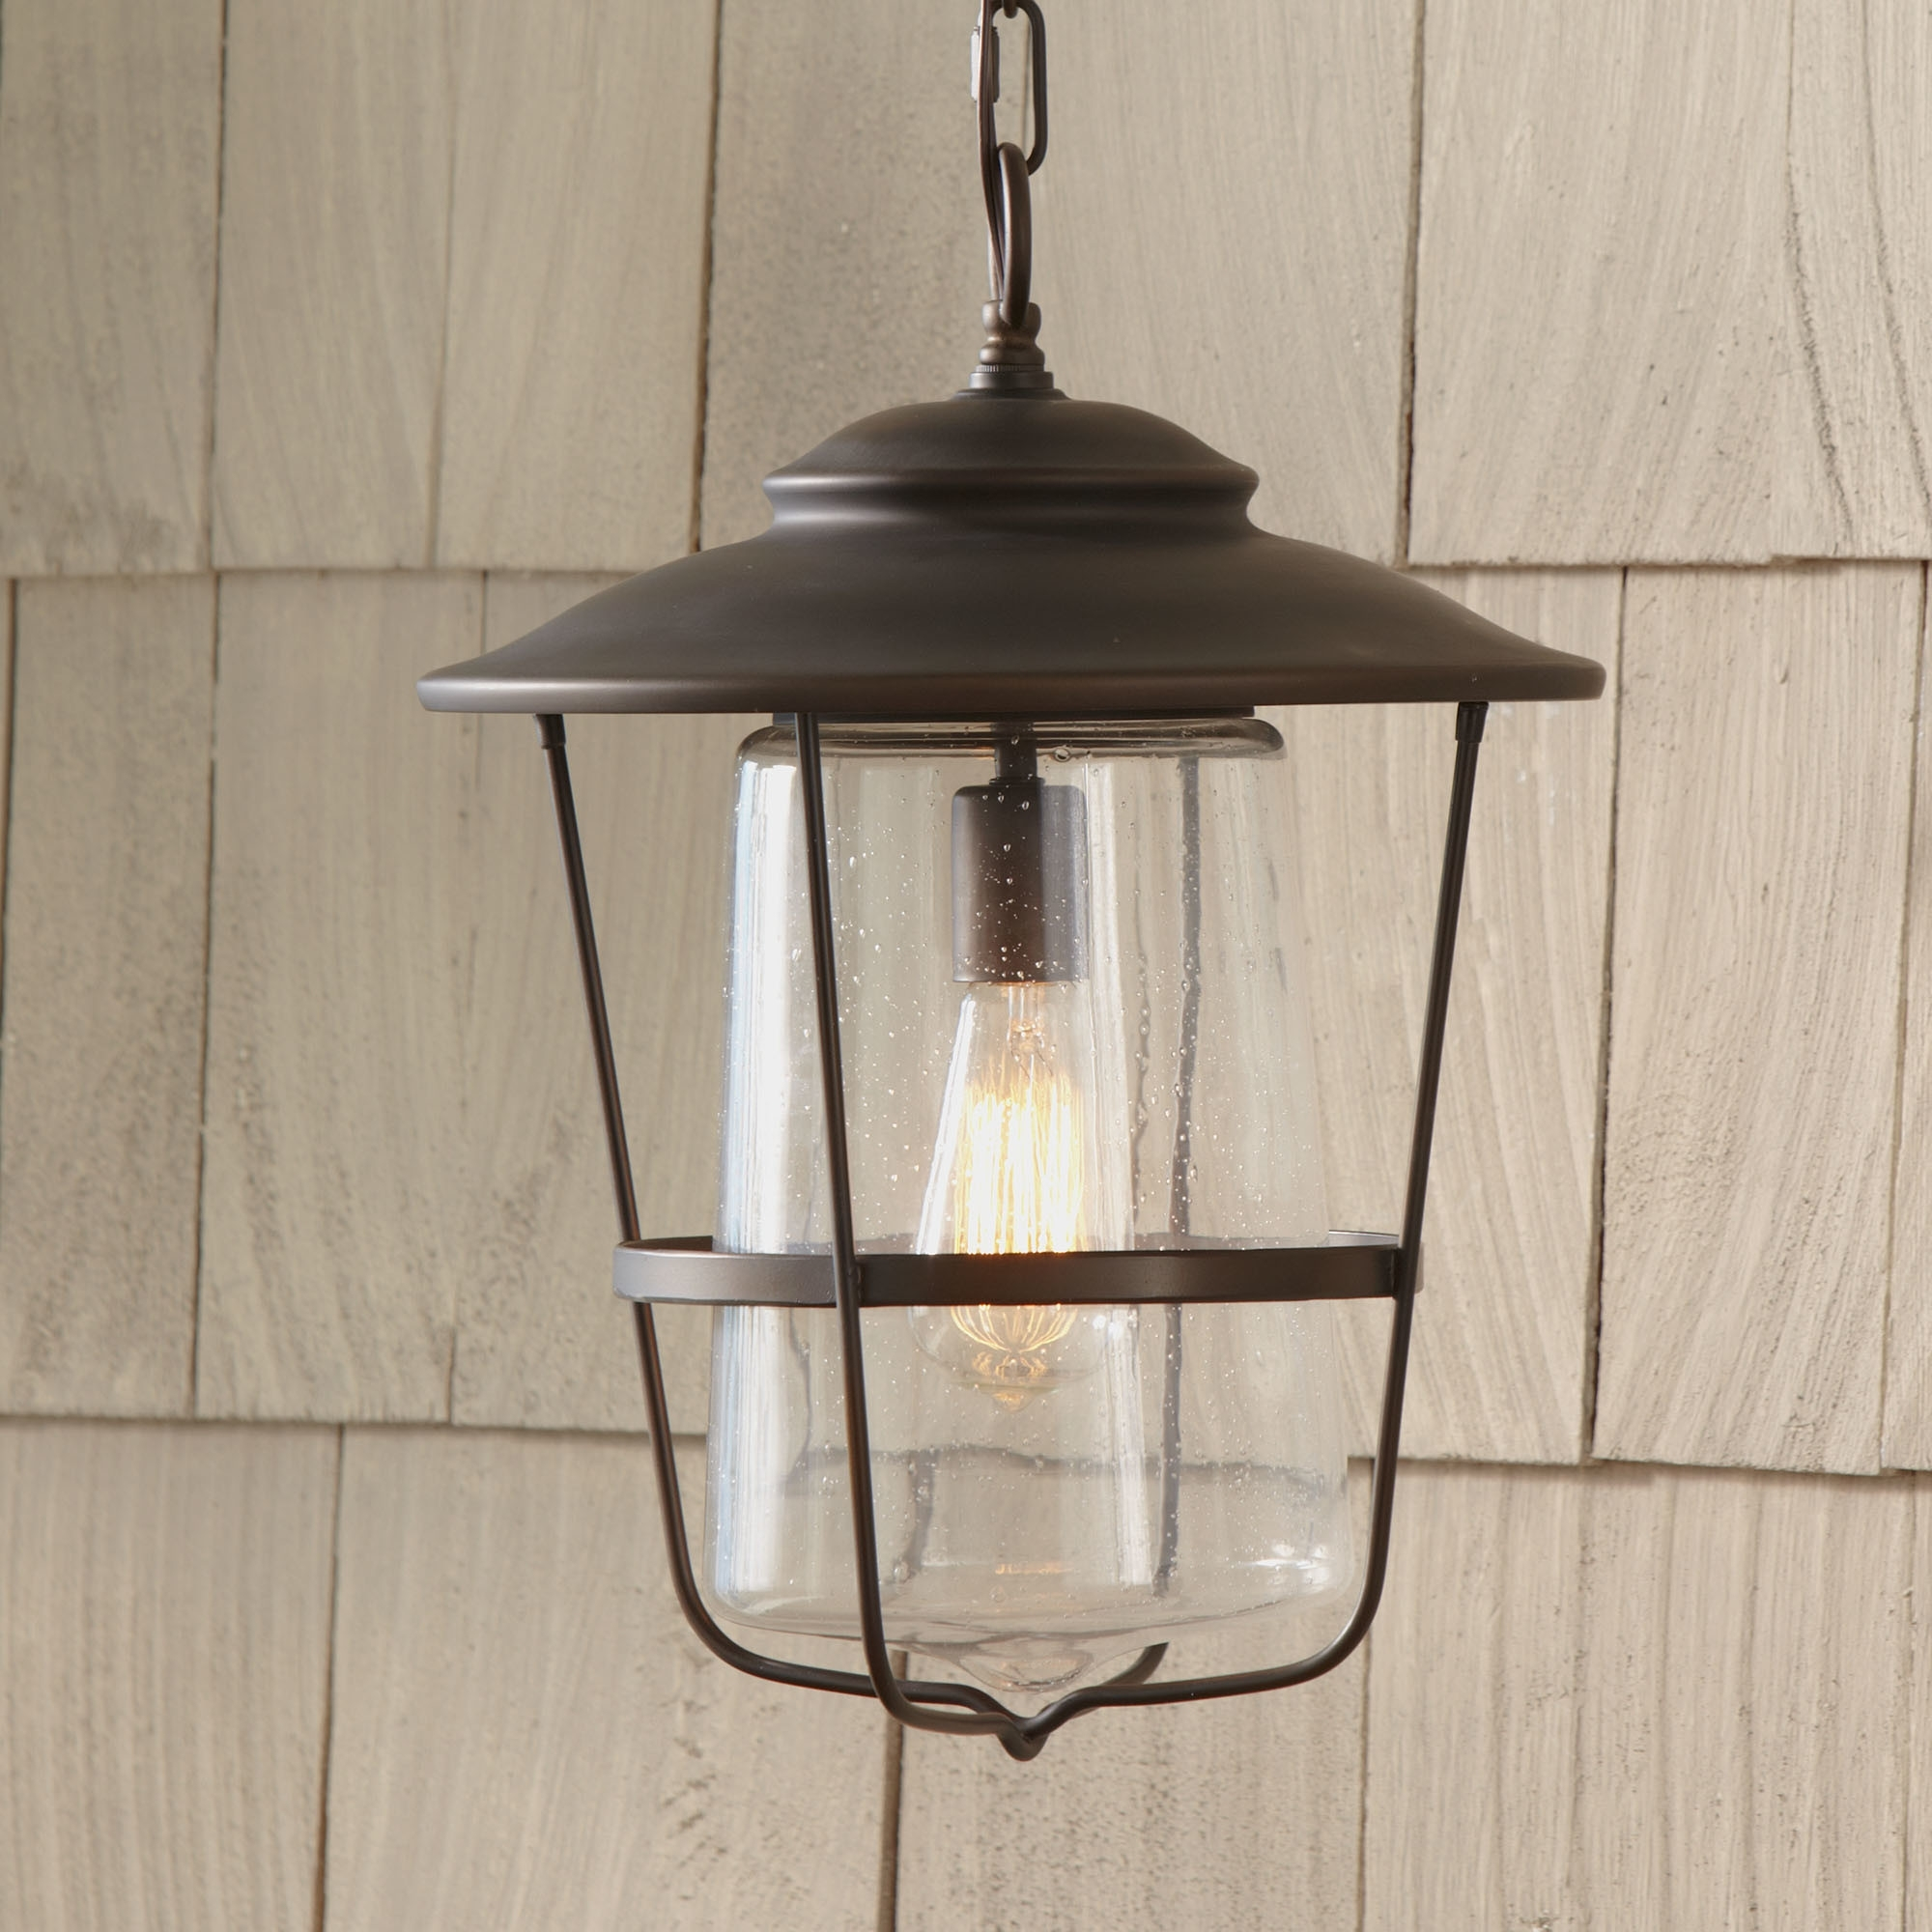 Outdoor Hanging Lights Wayfair Remington Lantern ~ Loversiq Intended For Most Up To Date Inexpensive Outdoor Hanging Lights (View 2 of 20)